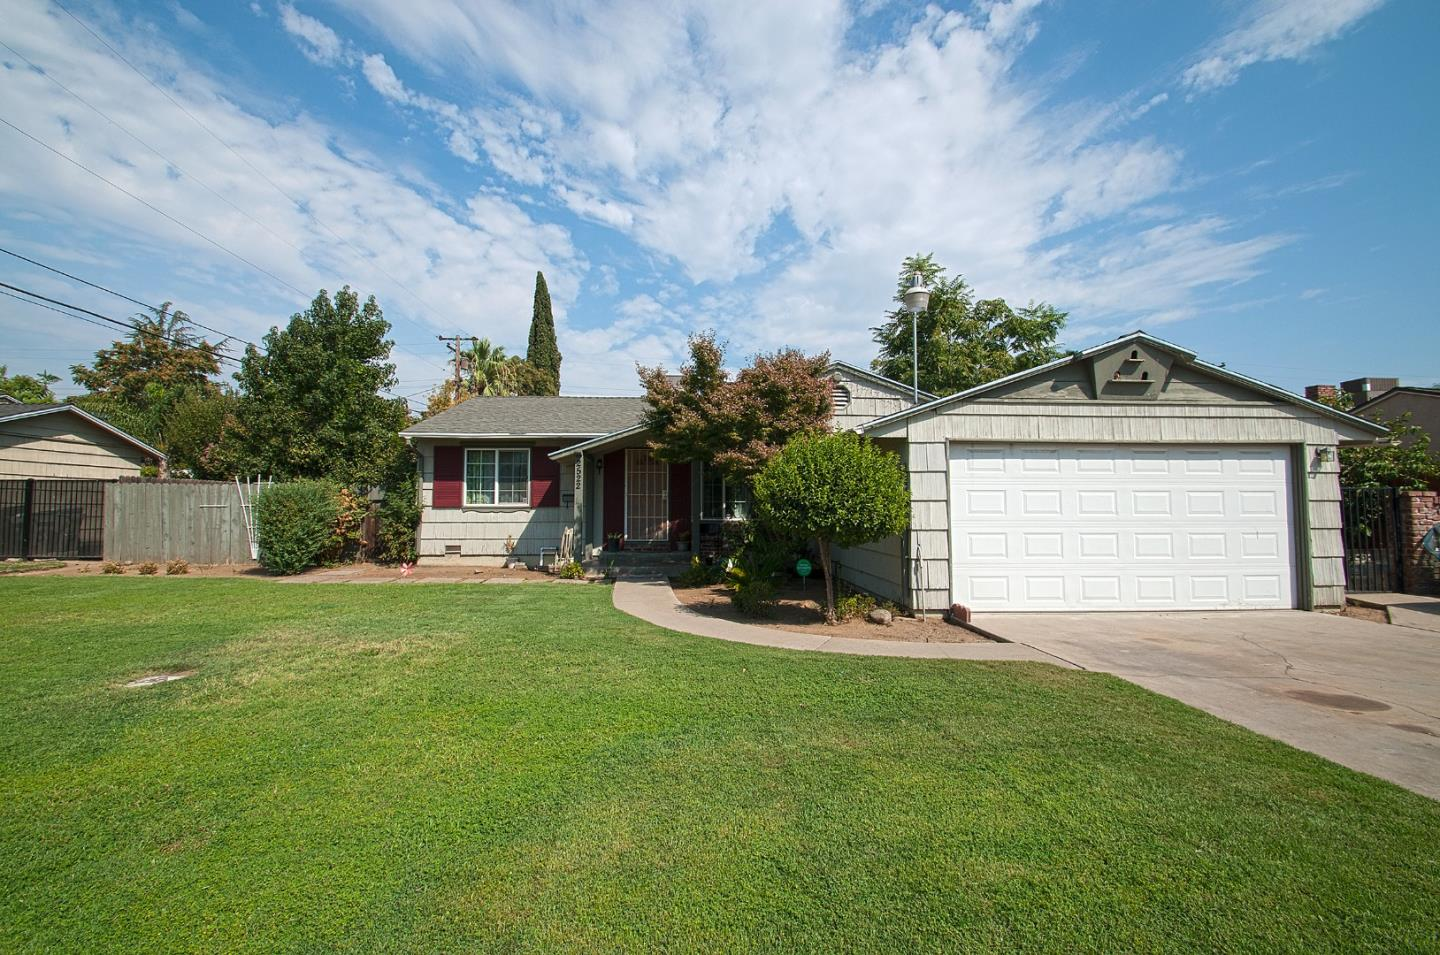 Single Family Home for Sale at 2522 N Dearing Avenue 2522 N Dearing Avenue Fresno, California 93703 United States